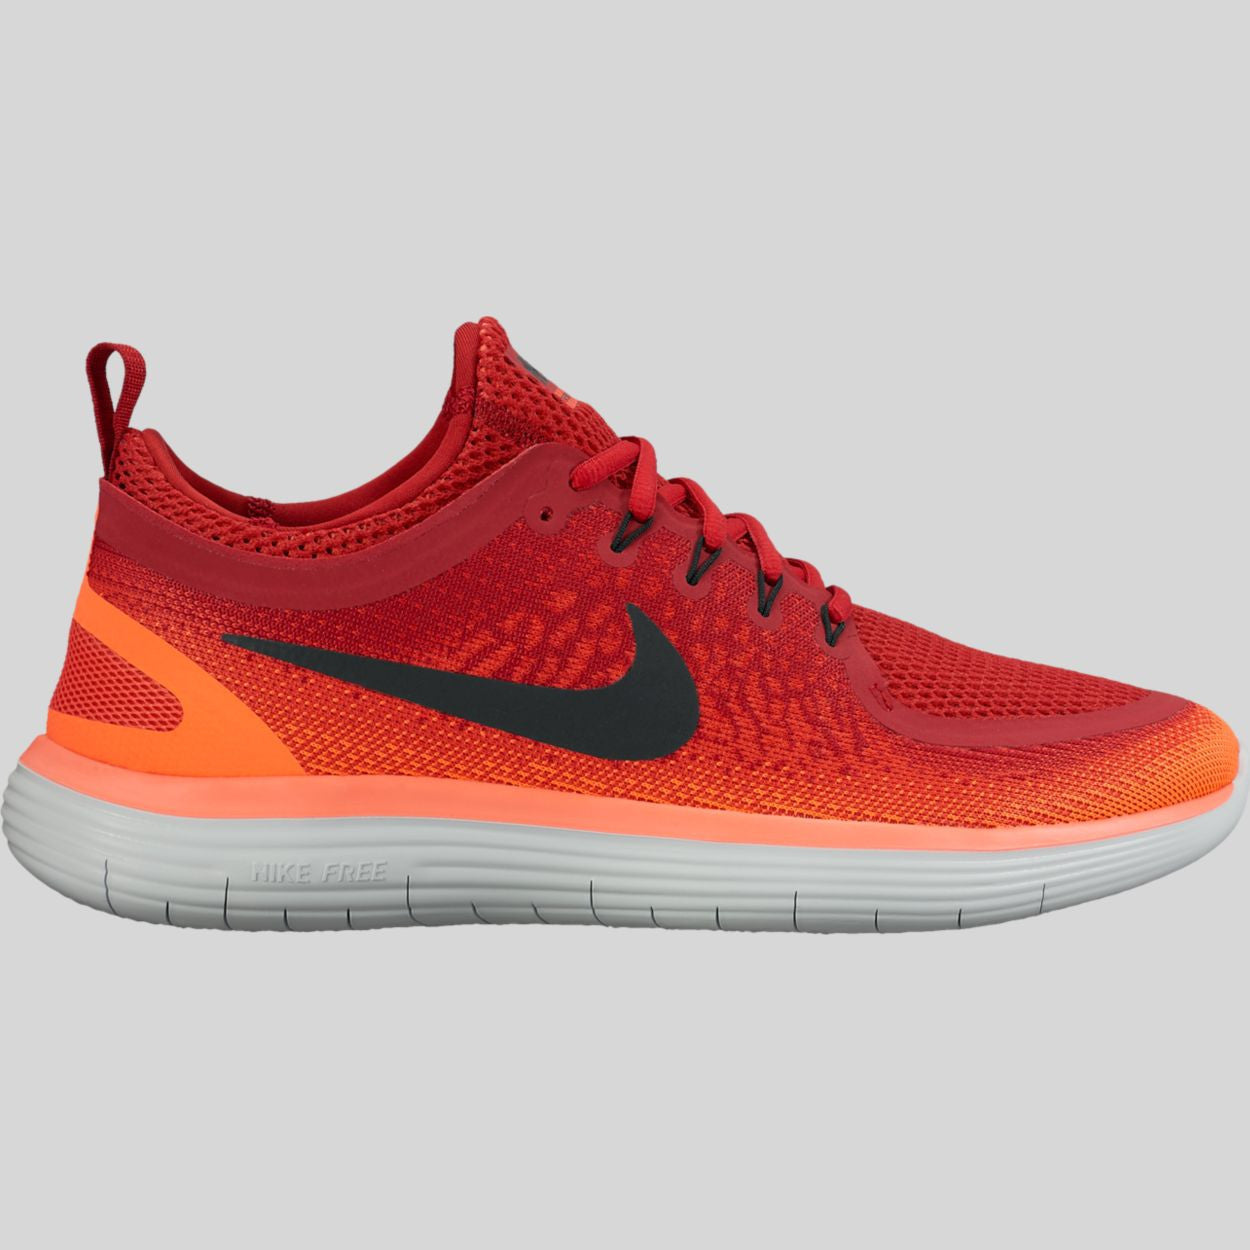 578ef3c92bd18 Nike Free RN Distance 2 Gym Red Black Max Orange (863775-600)